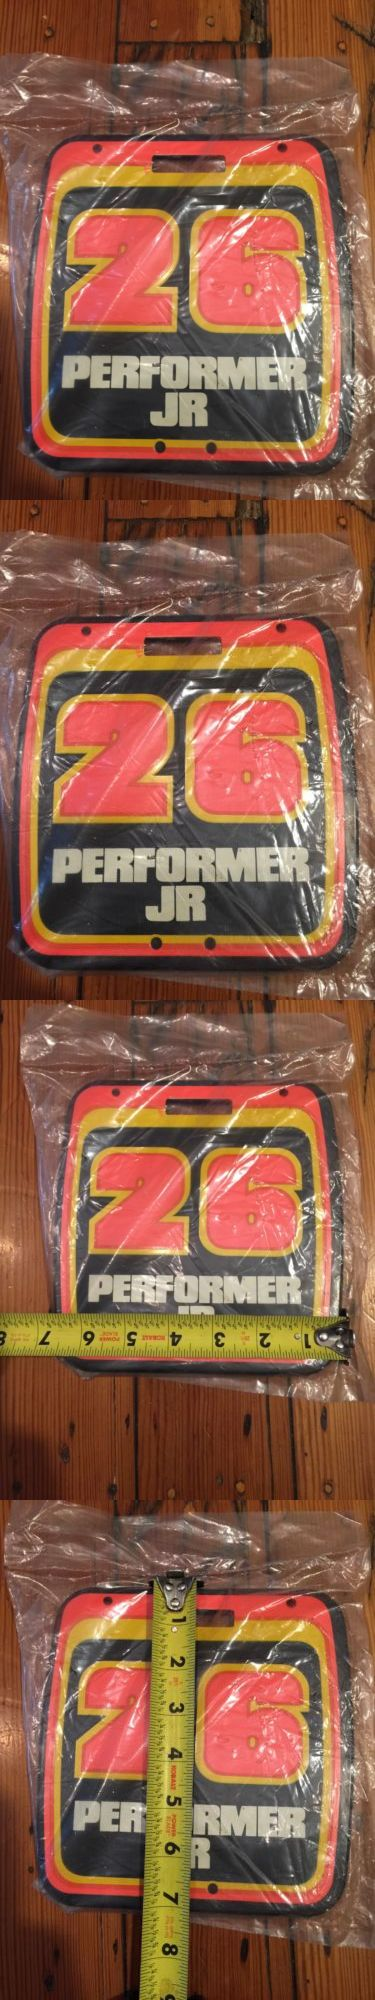 Decals Stickers 106953: Vintage Nos Old School Performer Jr Number Plate - Mx-Bmx -> BUY IT NOW ONLY: $59.95 on eBay!